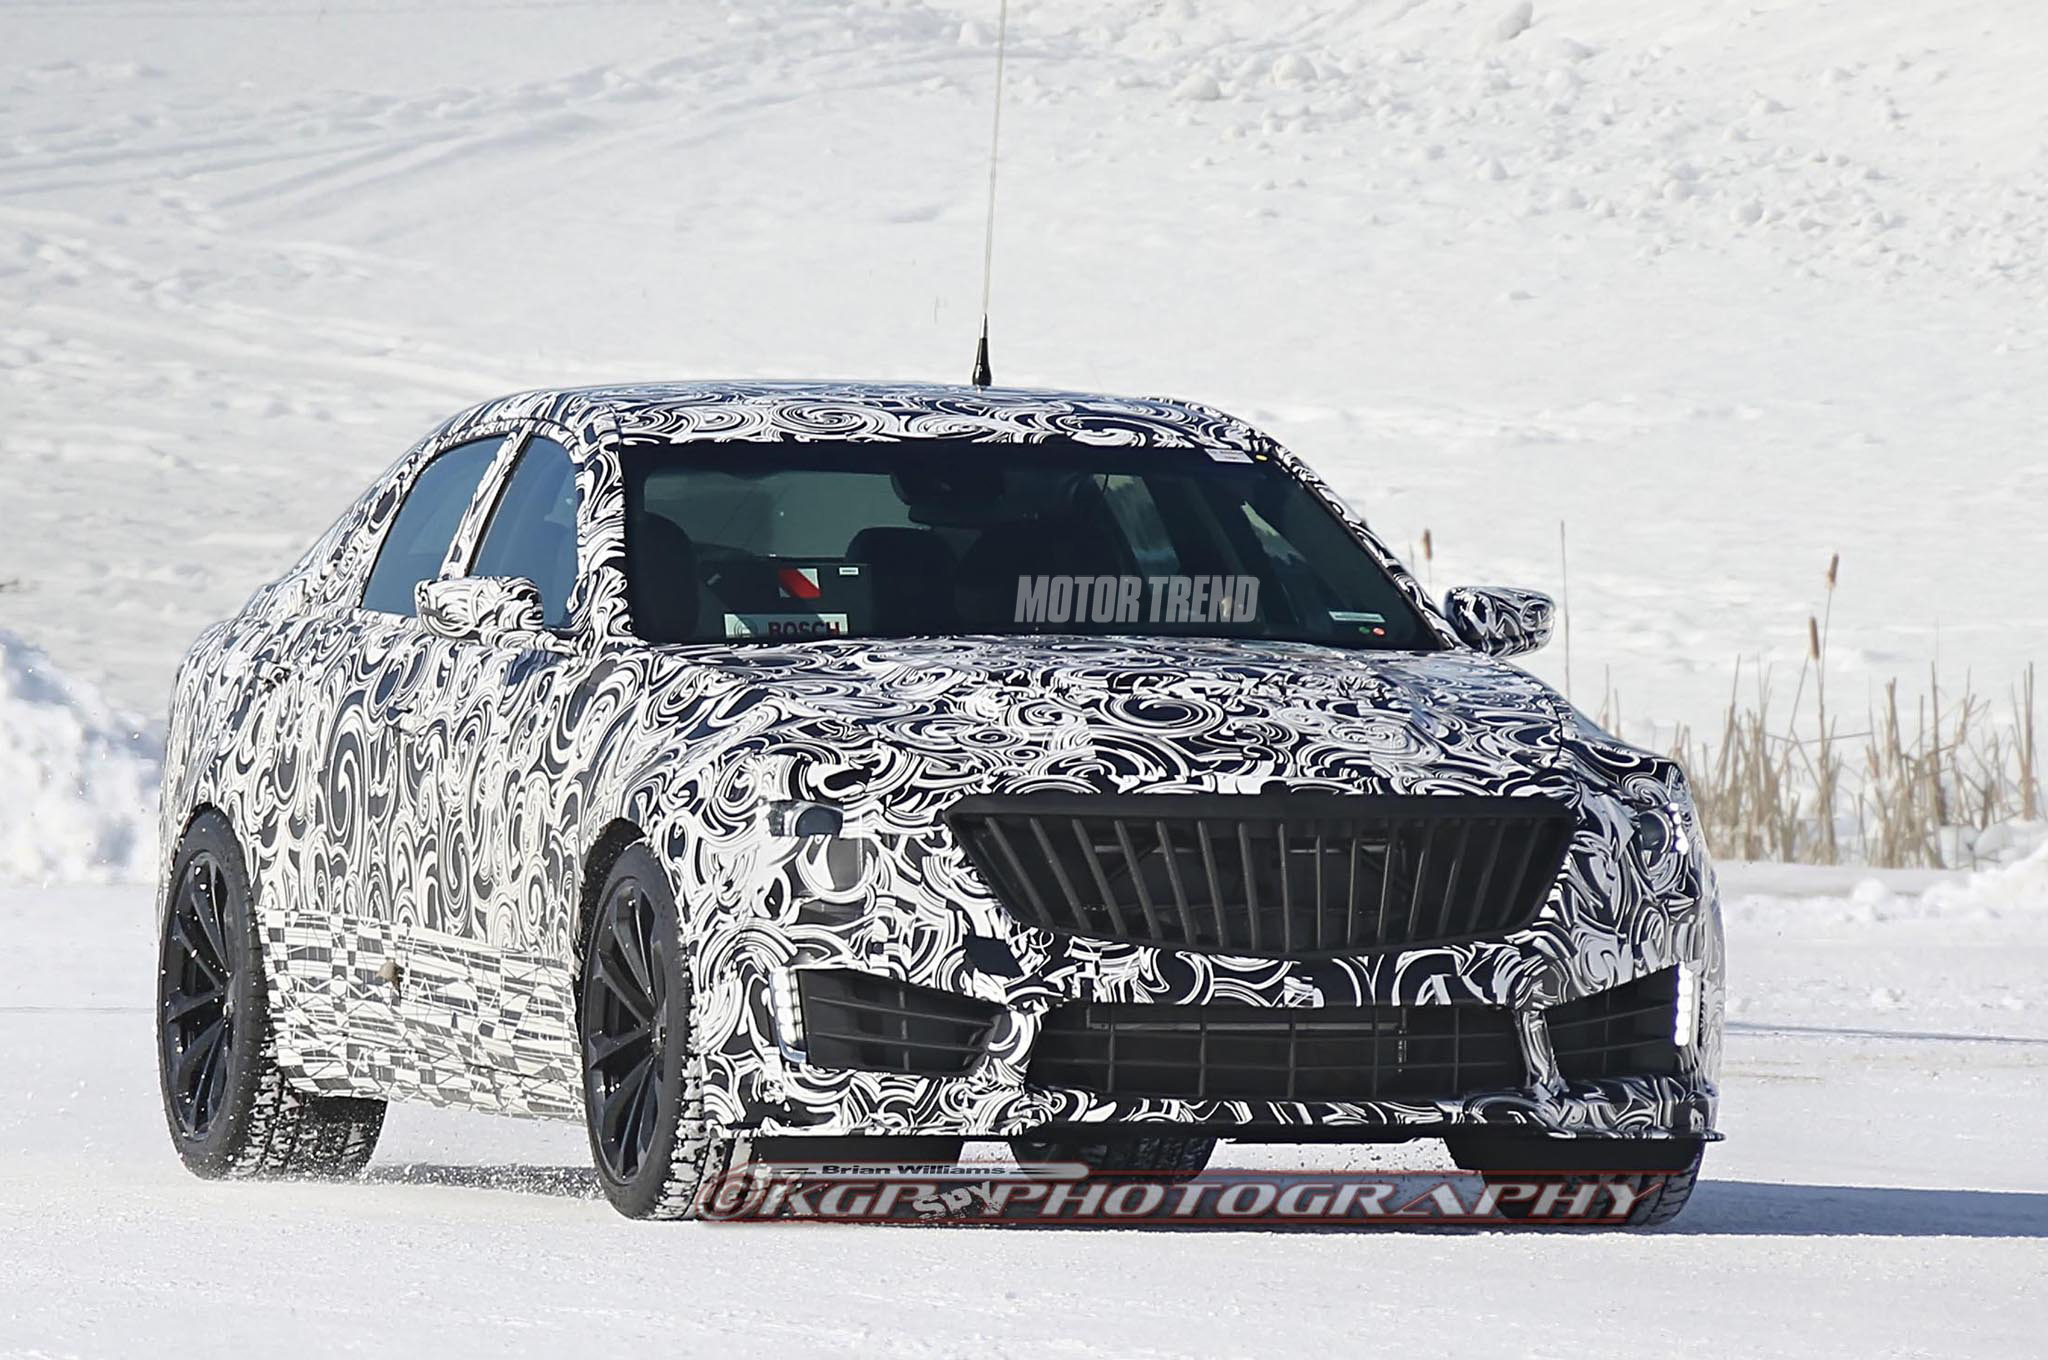 2016 Cadillac CTS-V Prototype Steps Out